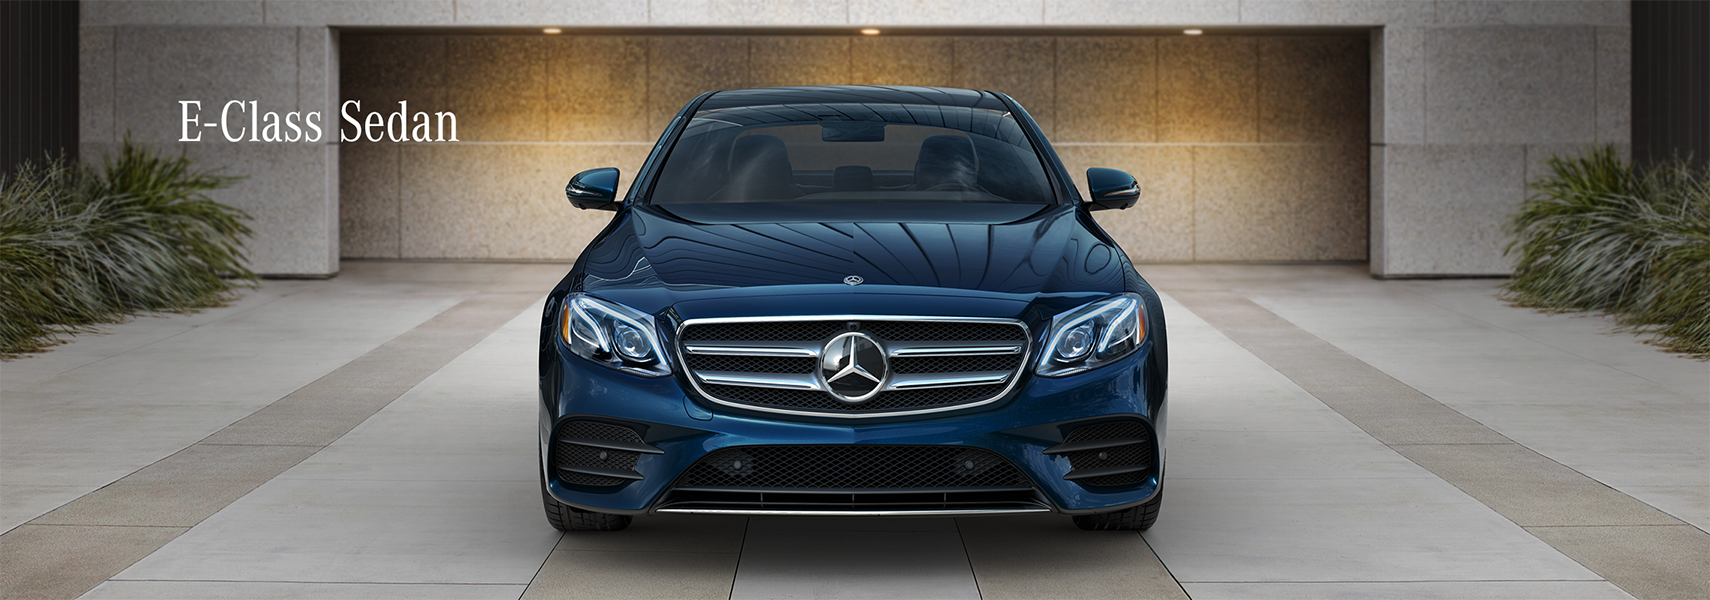 finance department for easy credit approval mercedes benz dealer in wilmington nc new and used mercedes benz serving dealership wilmington wallace whiteville nc mercedes benz dealer in wilmington nc